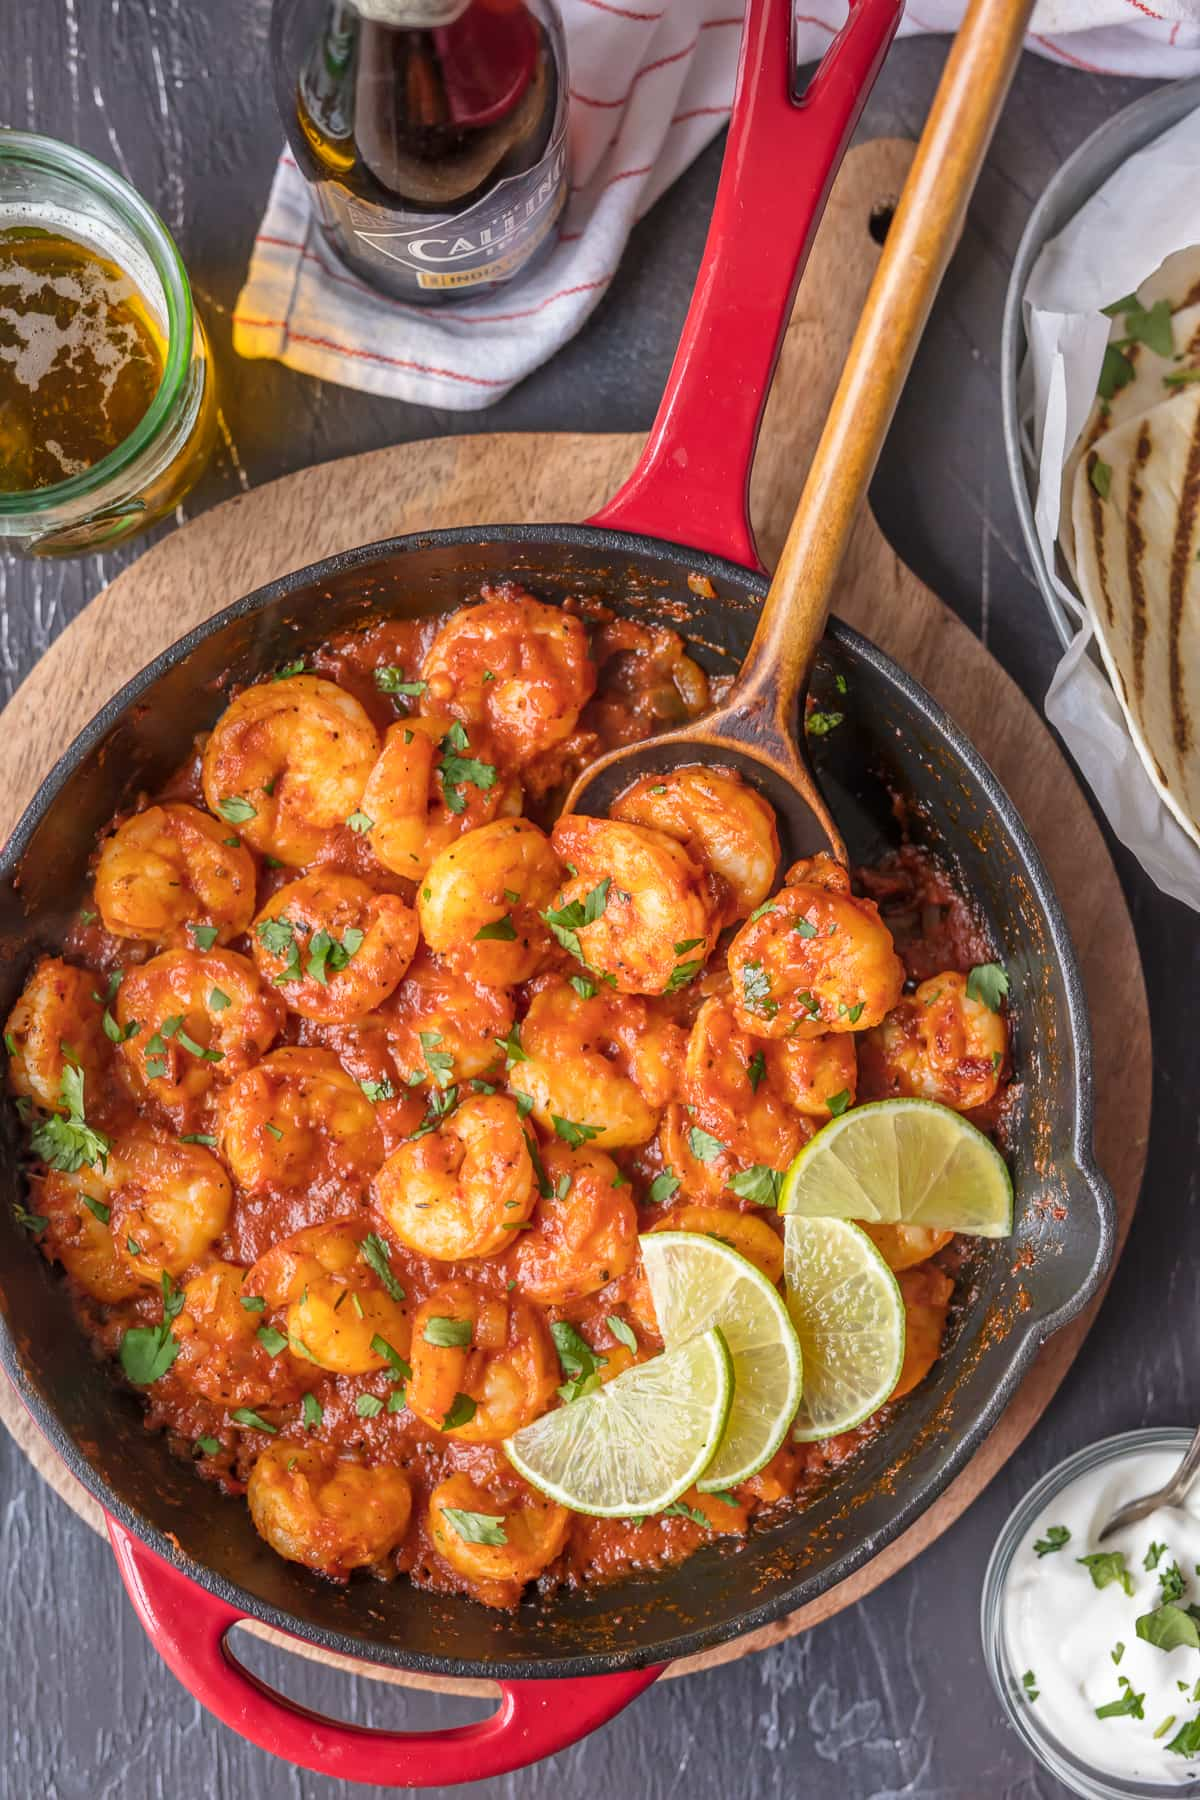 This SKILLET CHIPOTLE SHRIMP is our favorite easy shrimp recipe! Smokey, spicy, and so flavorful! This chipotle shrimp is perfect over pasta or rice for a simple and healthy dinner at home.